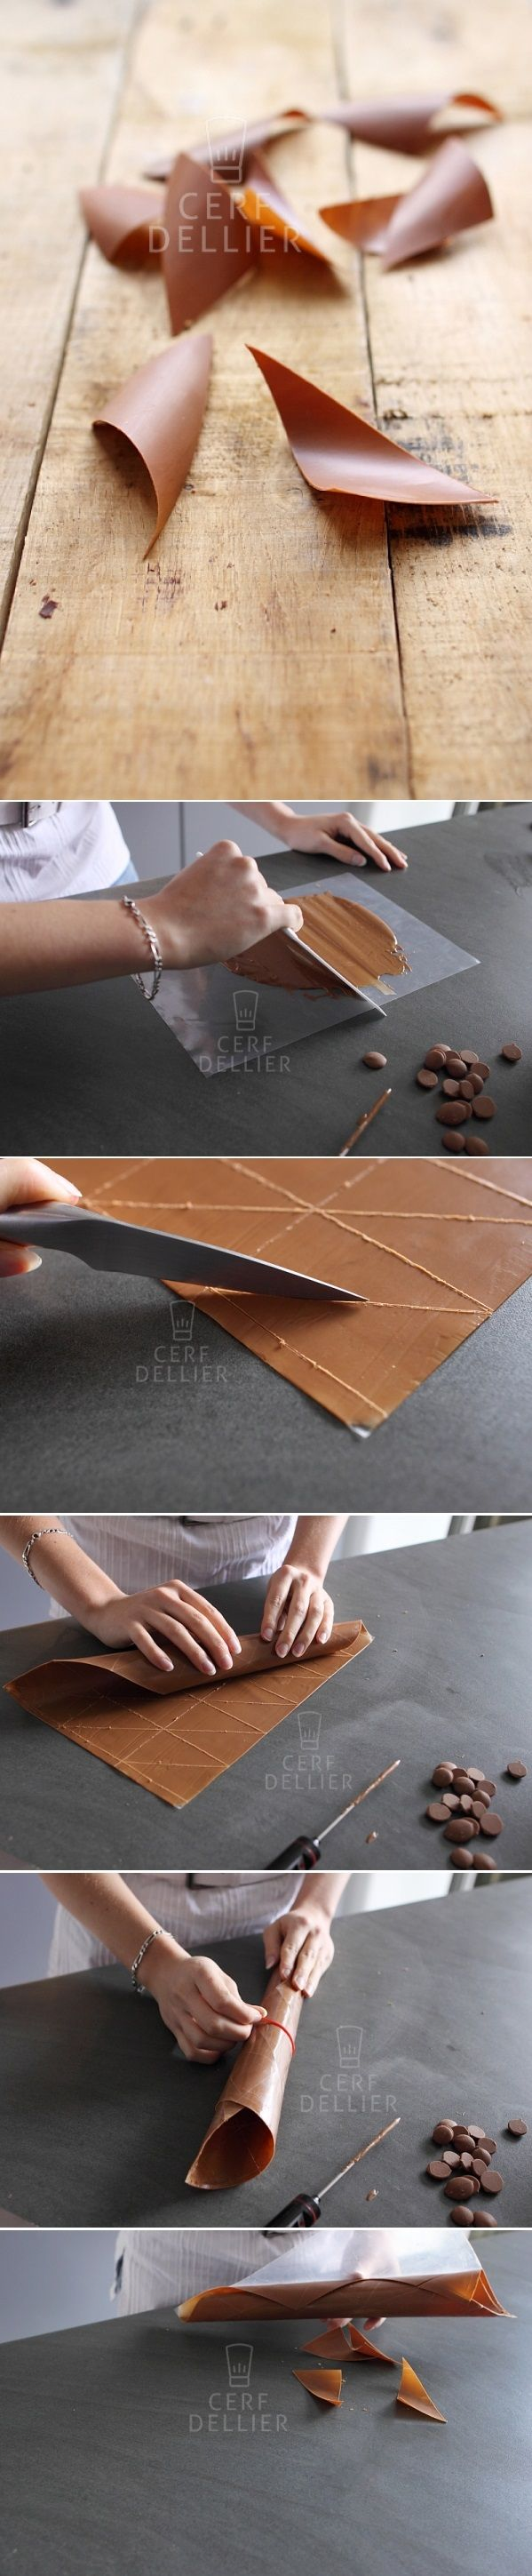 Cerf Dellier has a great collection of chocolate decoration tutorials.  The blog is in French but the photos there are pretty self-explanatory :)